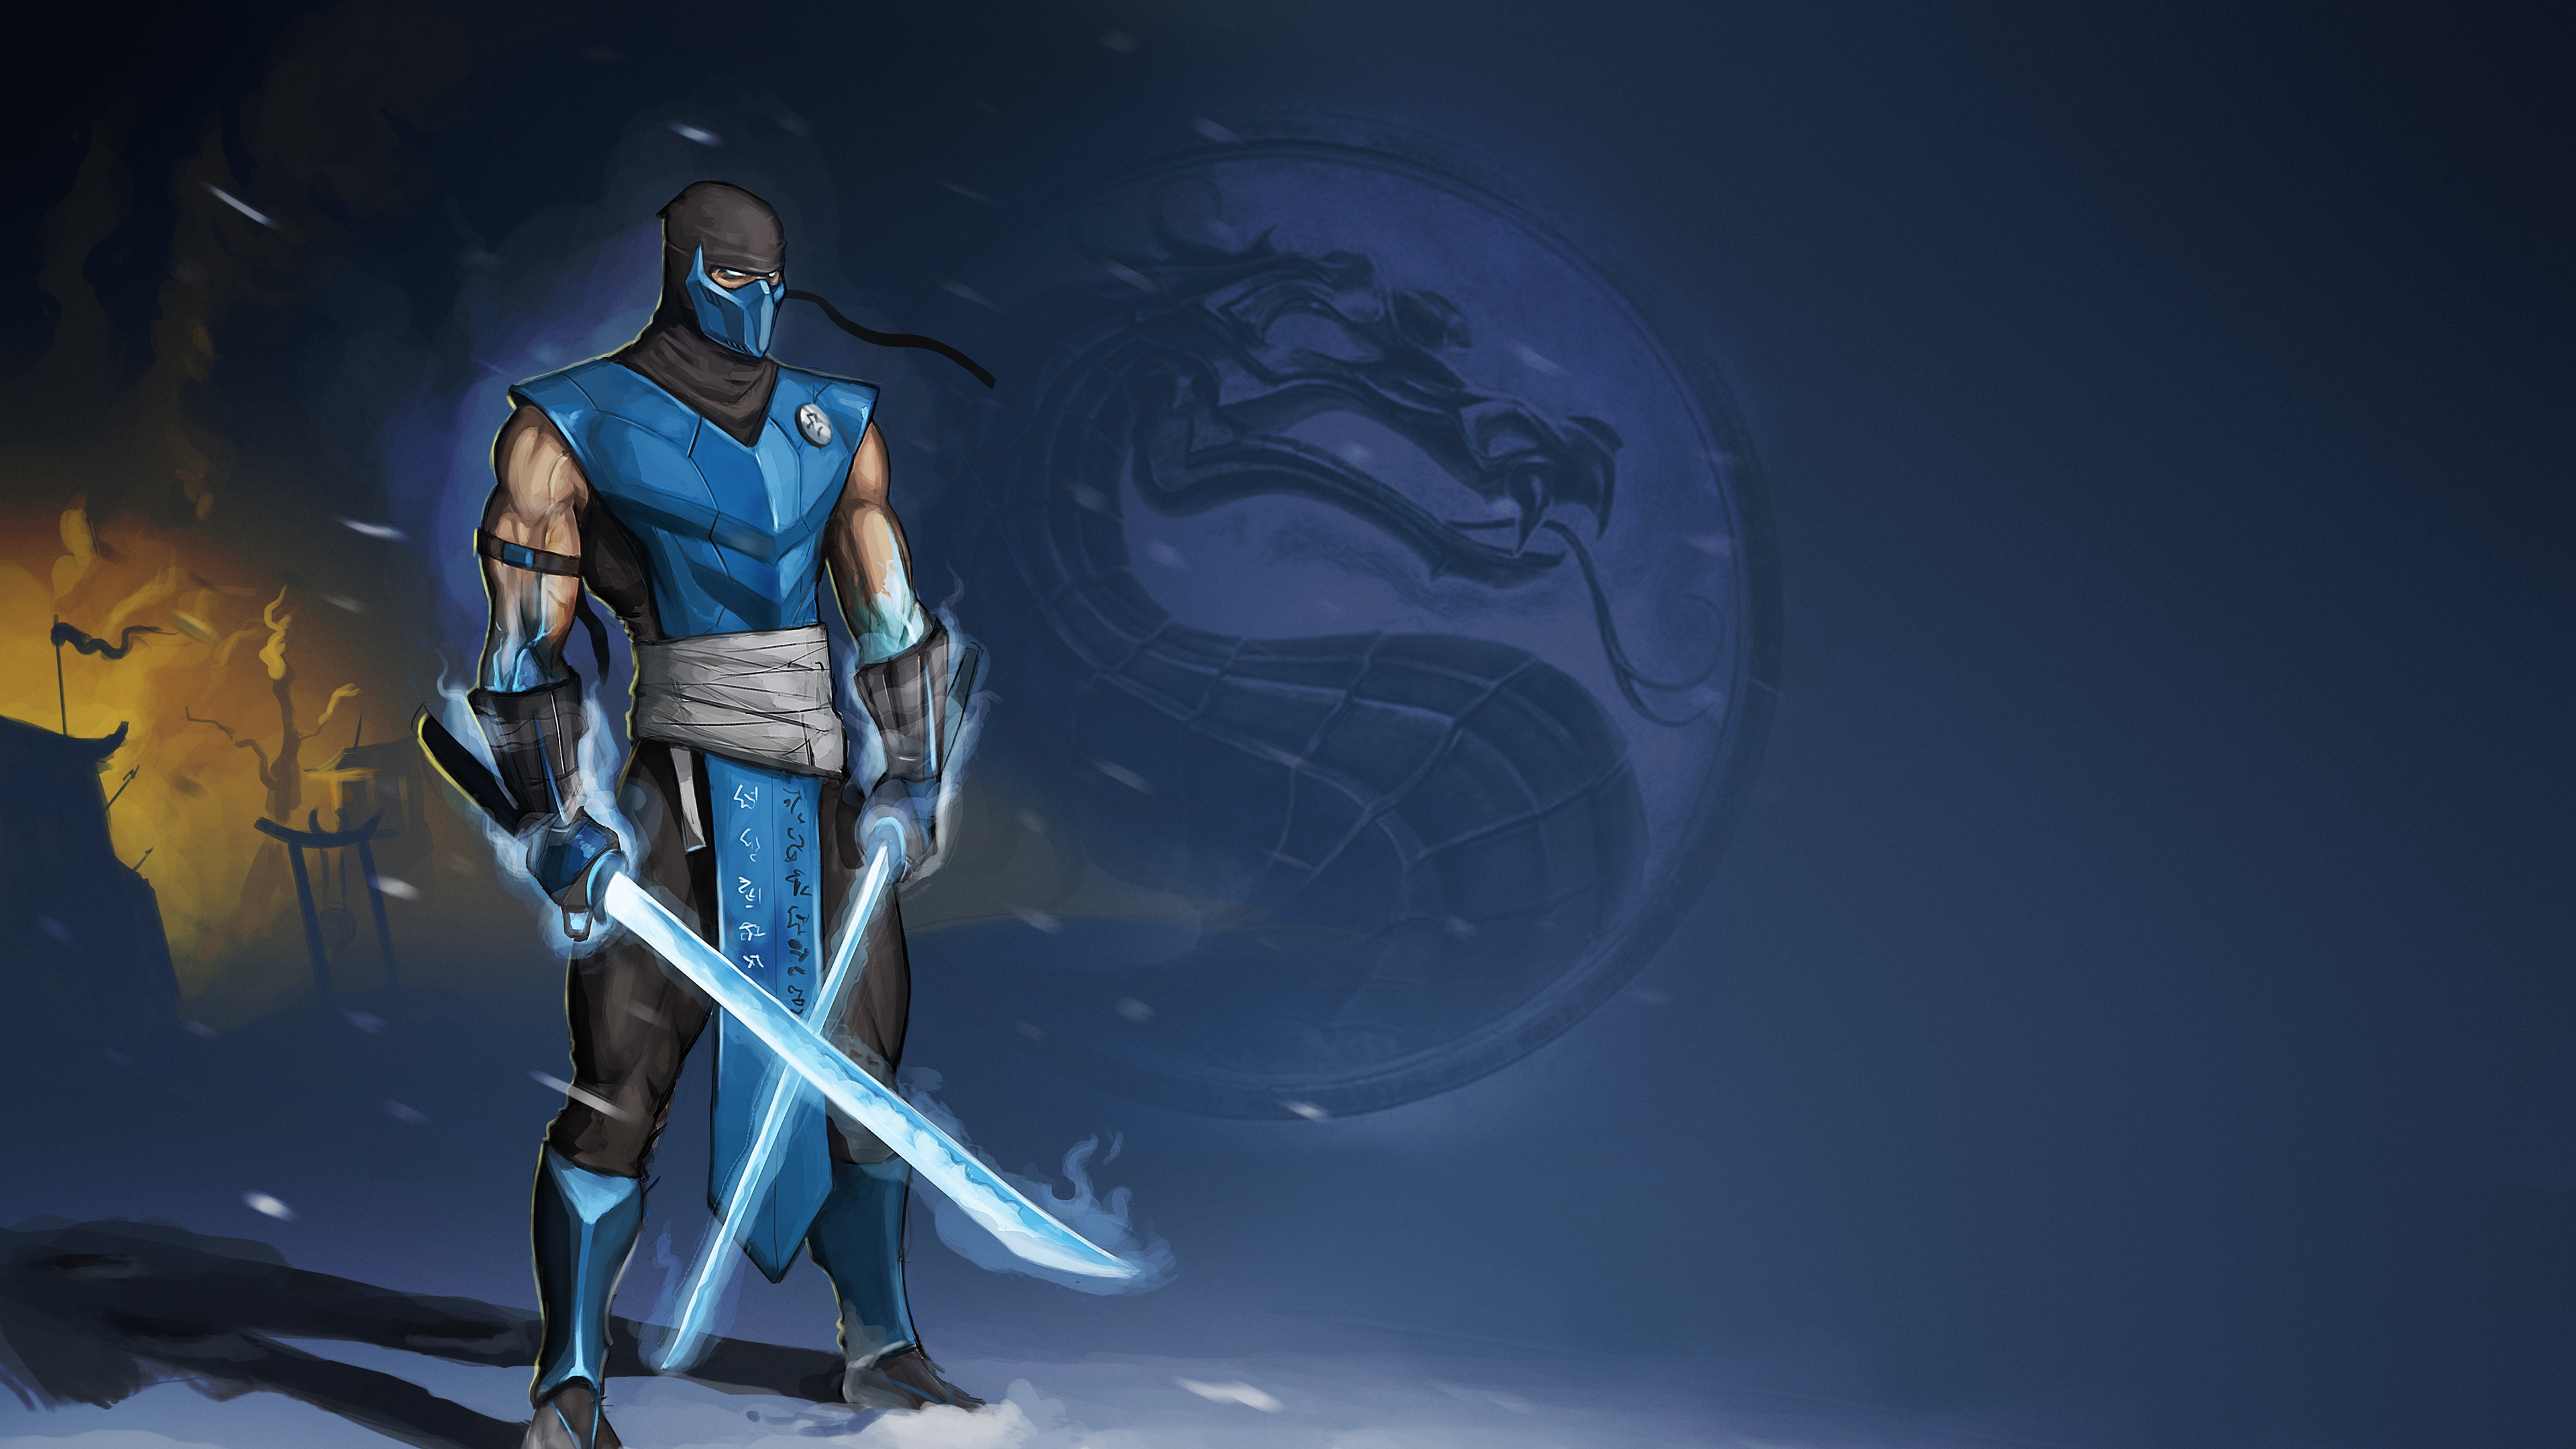 Wallpaper 4k Mortal Kombat Sub Zero Swords Art 4k Mortal Kombat